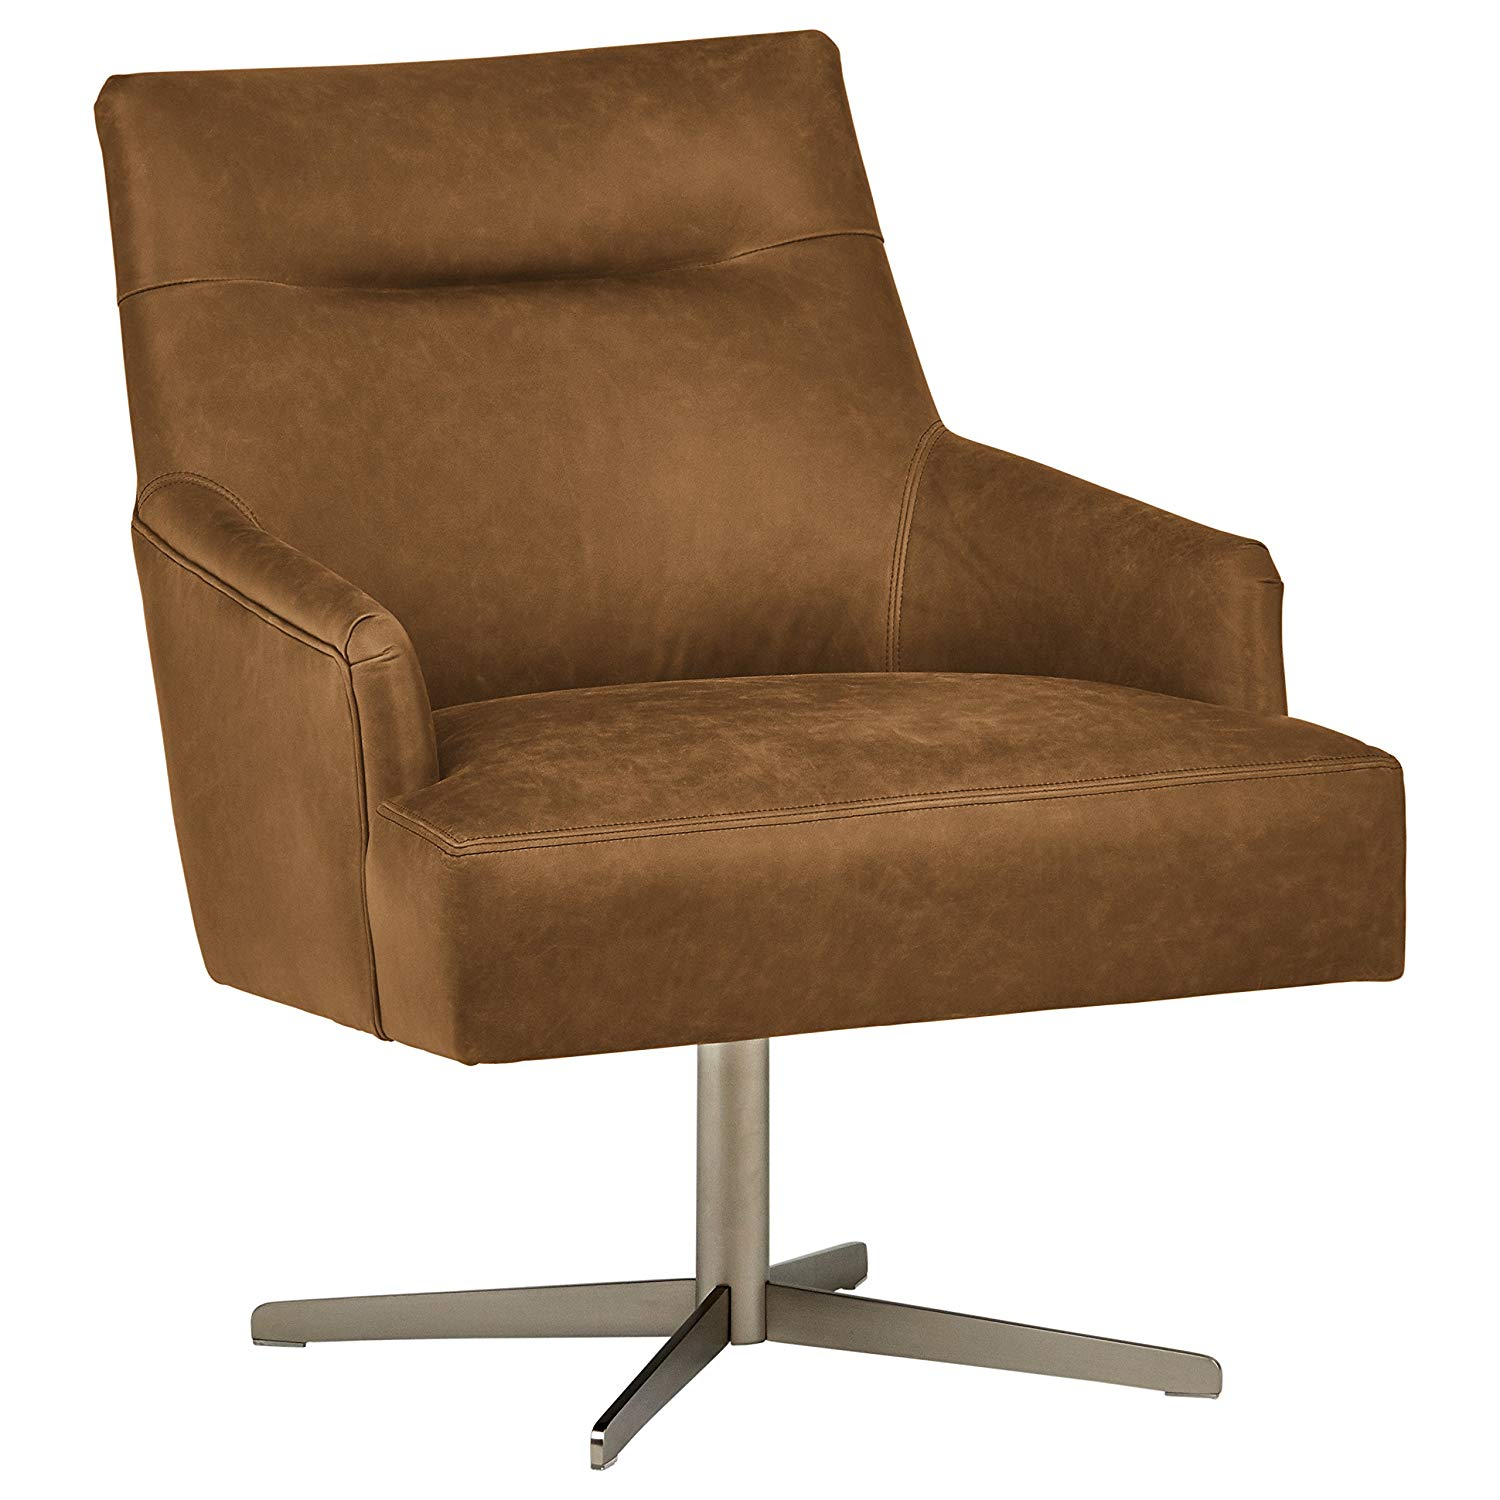 "Rivet Zane Mid-Century Modern Swivel Top-Grain Leather Chair, 28.75"" W, Saddle"